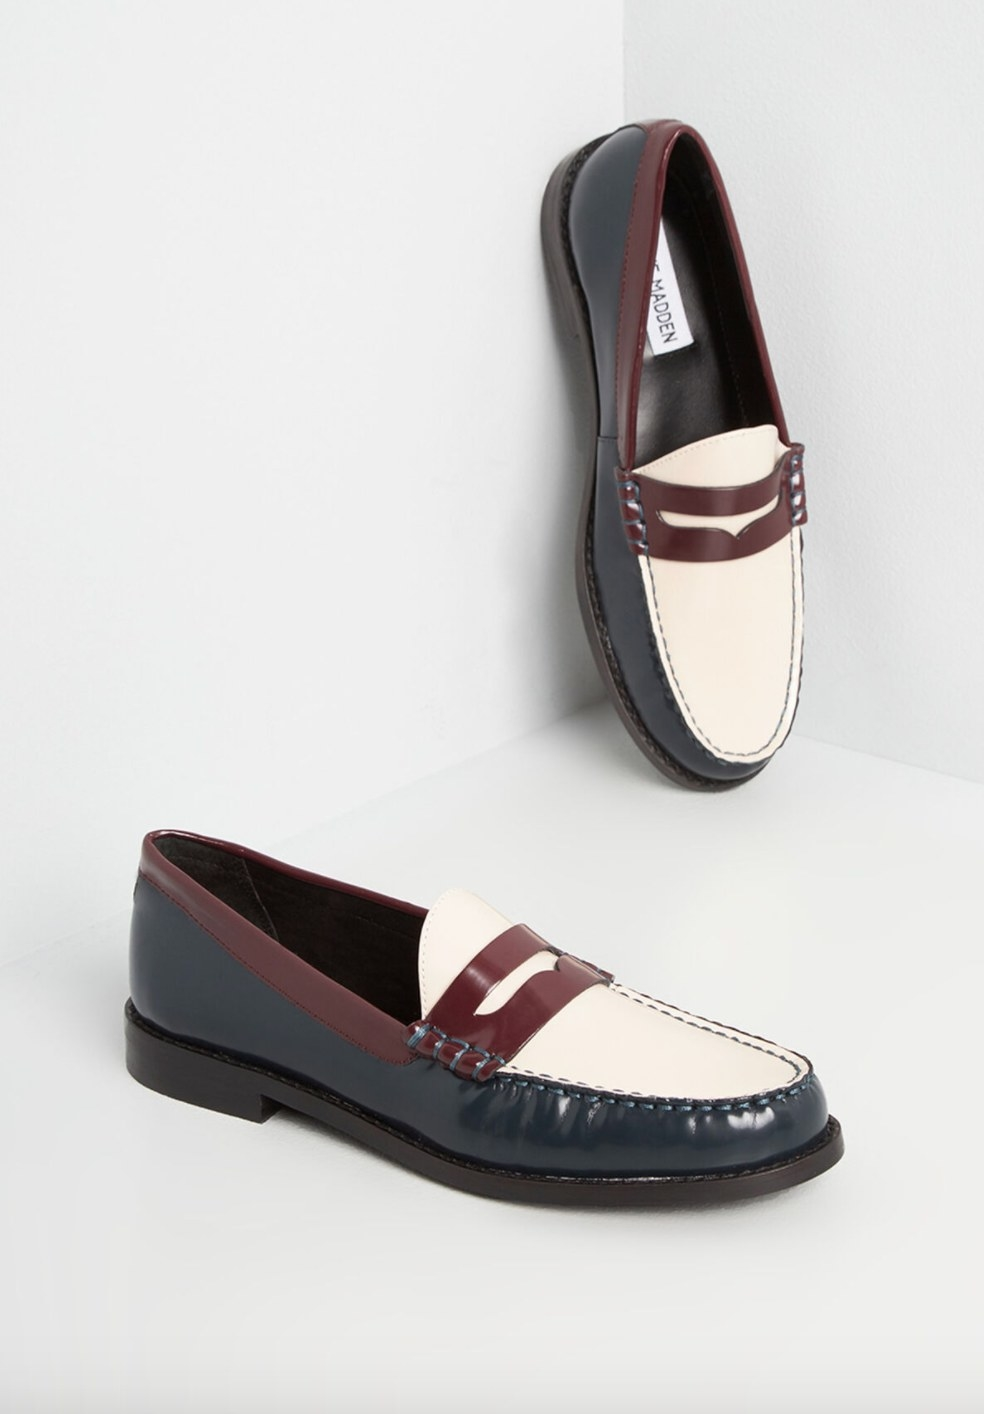 The penny loafer in white and burgundy